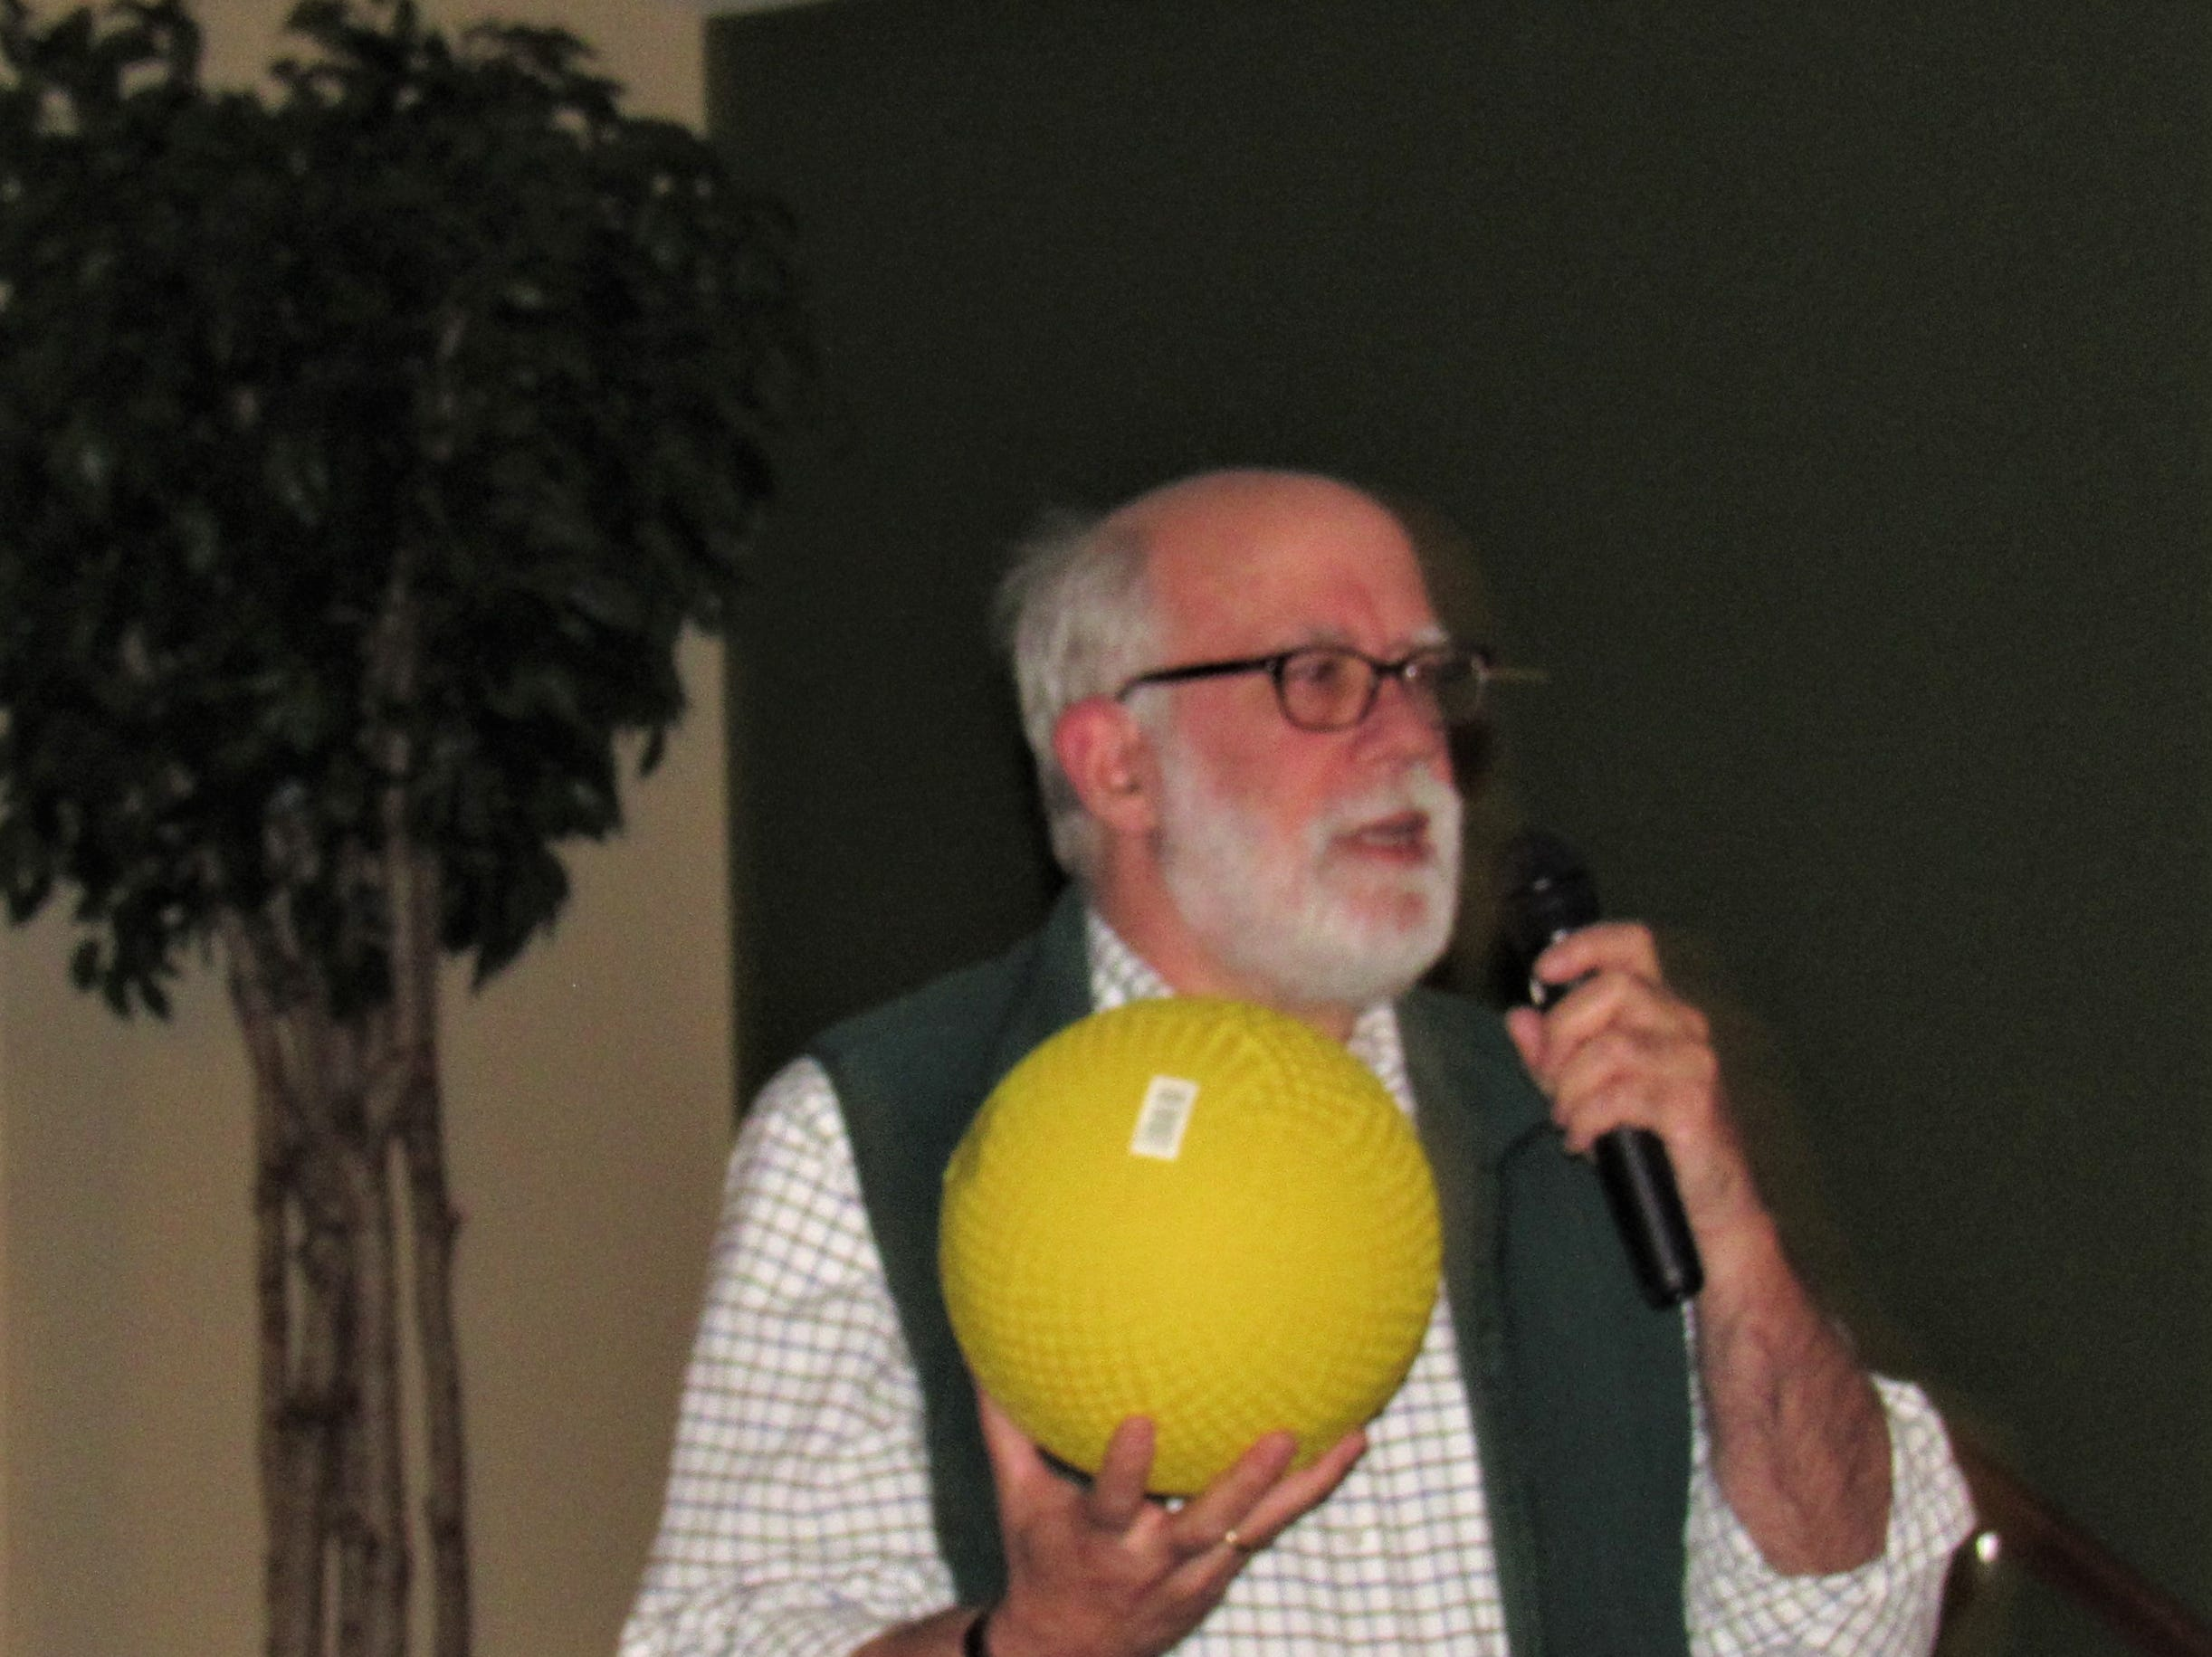 Author and speaker Richard Cook spoke at Sherrill Hills on Nov. 13.  The ball he is holding represents 142 pounds of uranium.